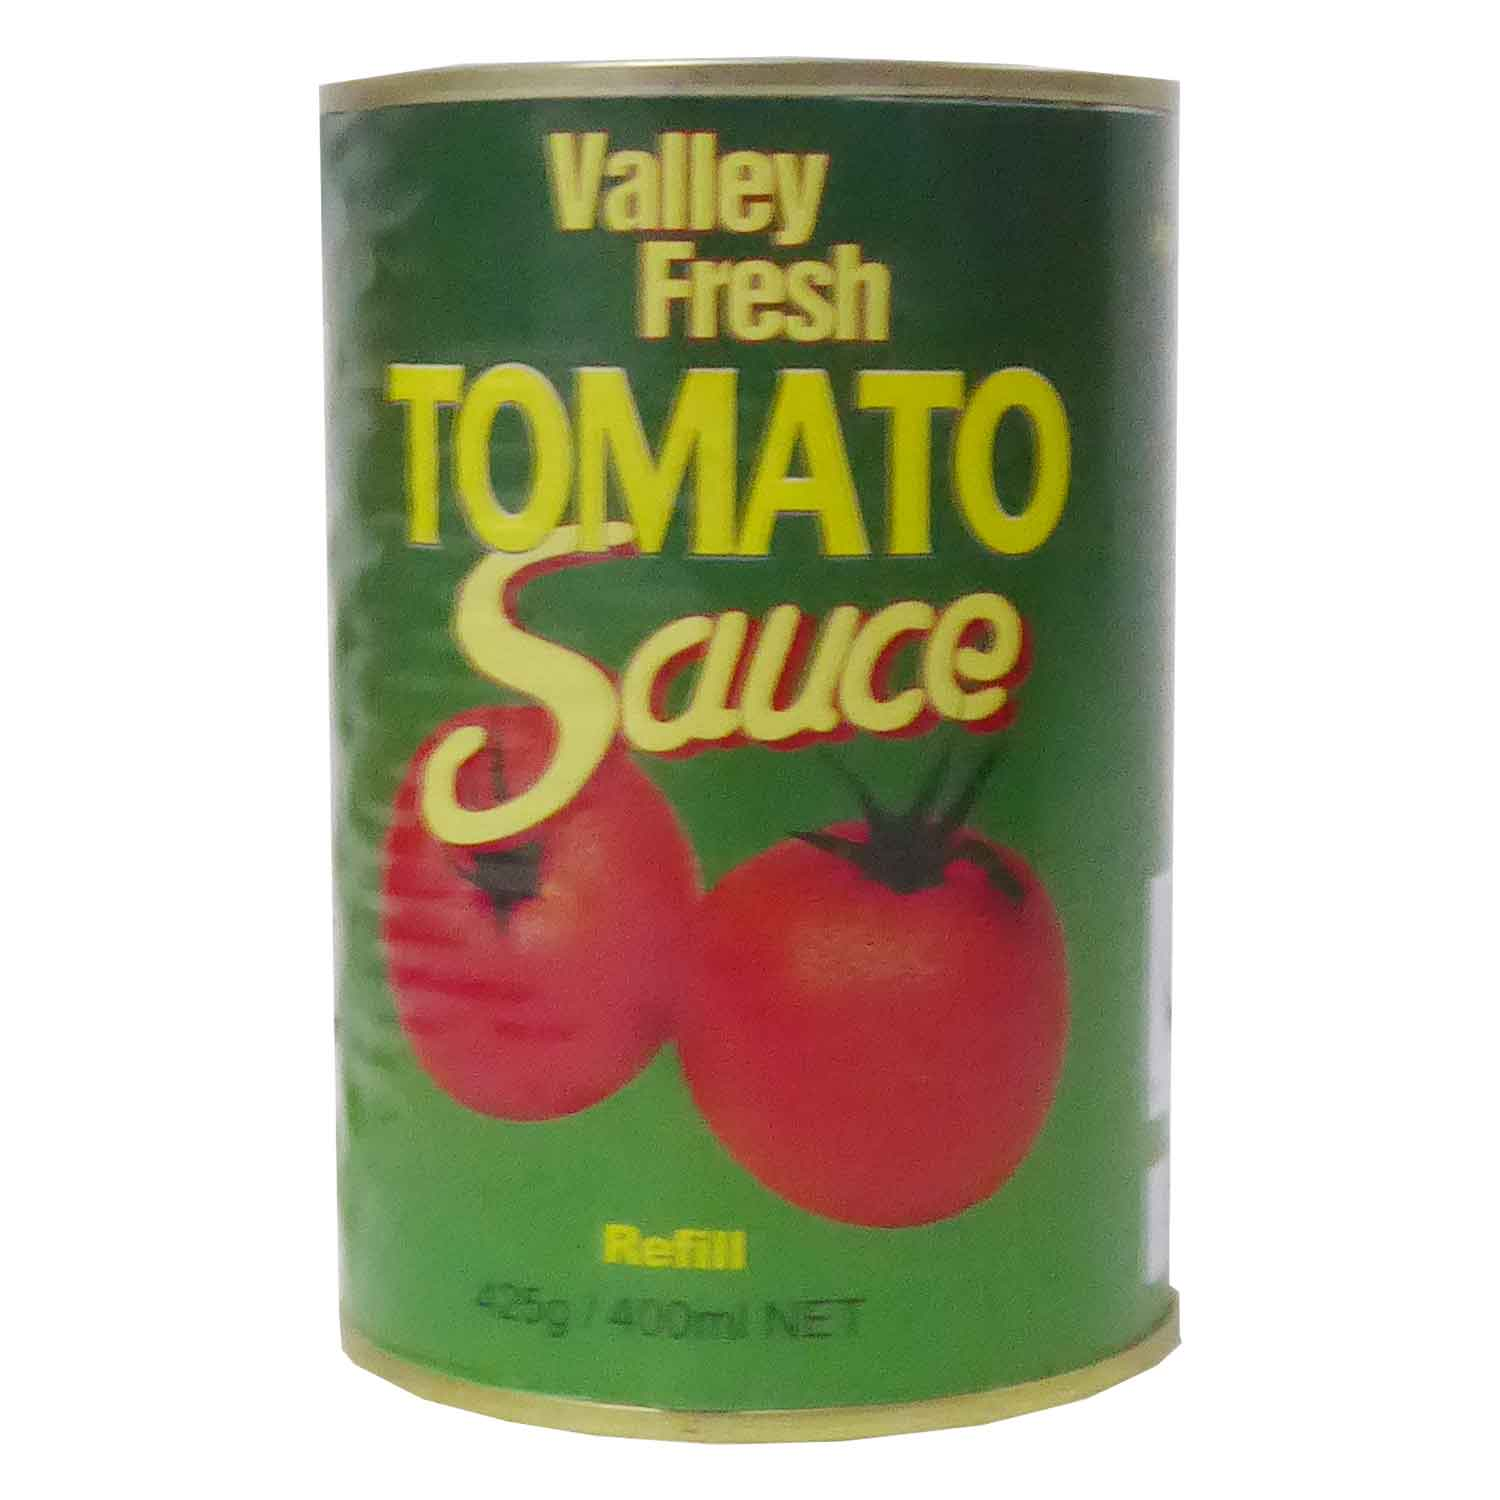 Valley Fresh Tomato Sauce